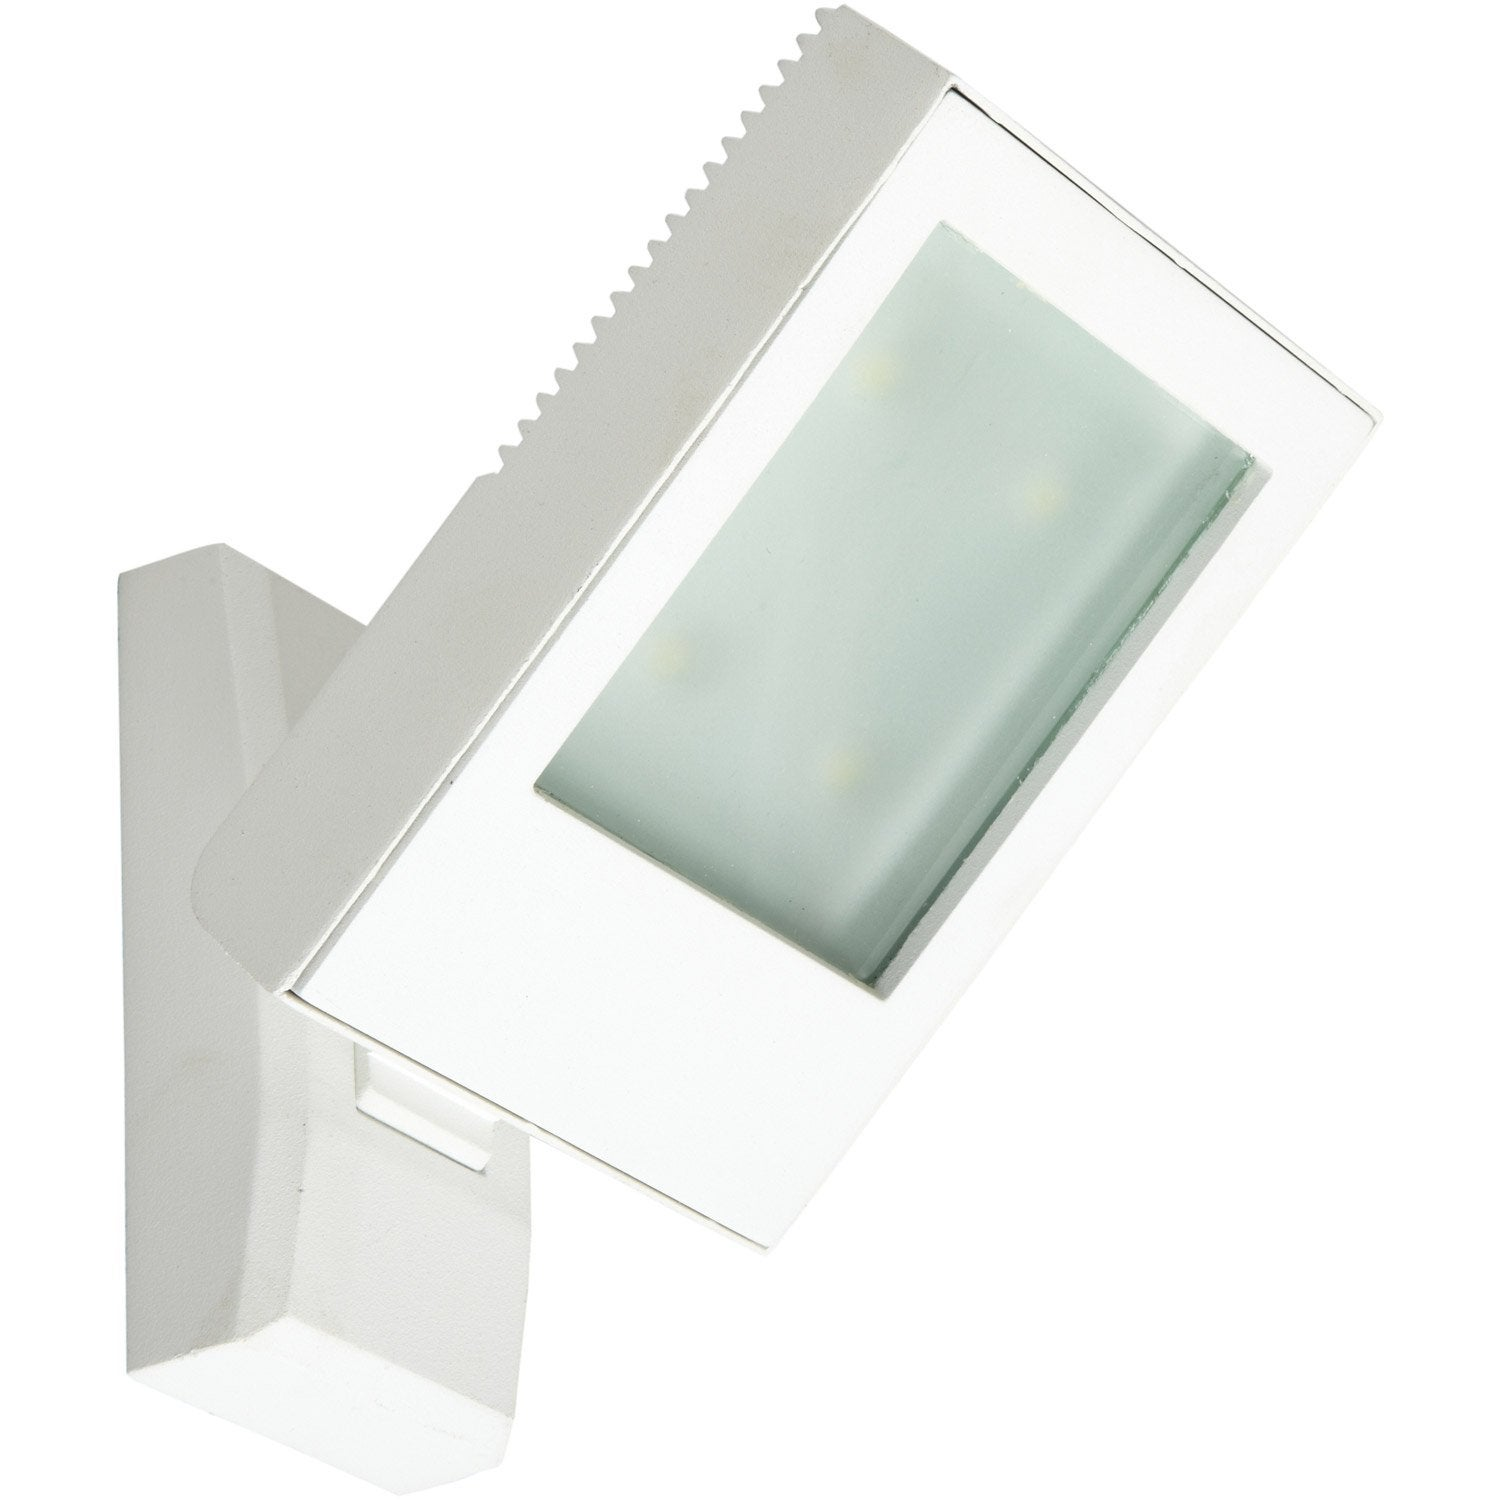 Applique montante ext rieure jade led int gr e blanc for Applique murale exterieur led leroy merlin